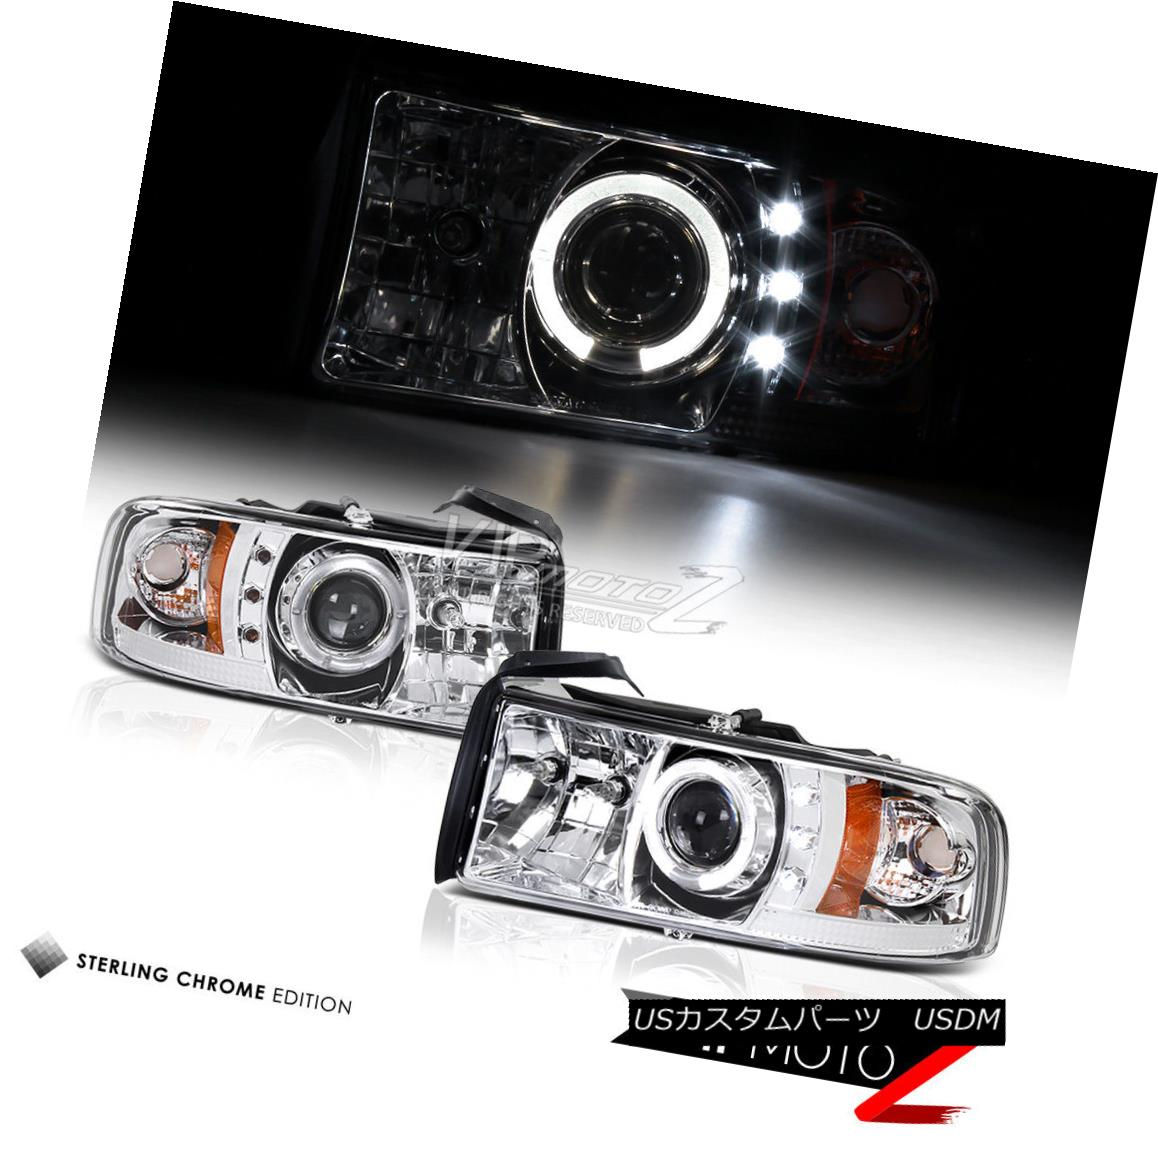 ヘッドライト 1994-2001 Dodge Ram 1500/2500/3500 Chrome Clear Halo LED Headlight Headlamp PAIR 1994-2001 Dodge Ram 1500/2500/3500 Chrome Clear Haloヘッドライトヘッドランプペア